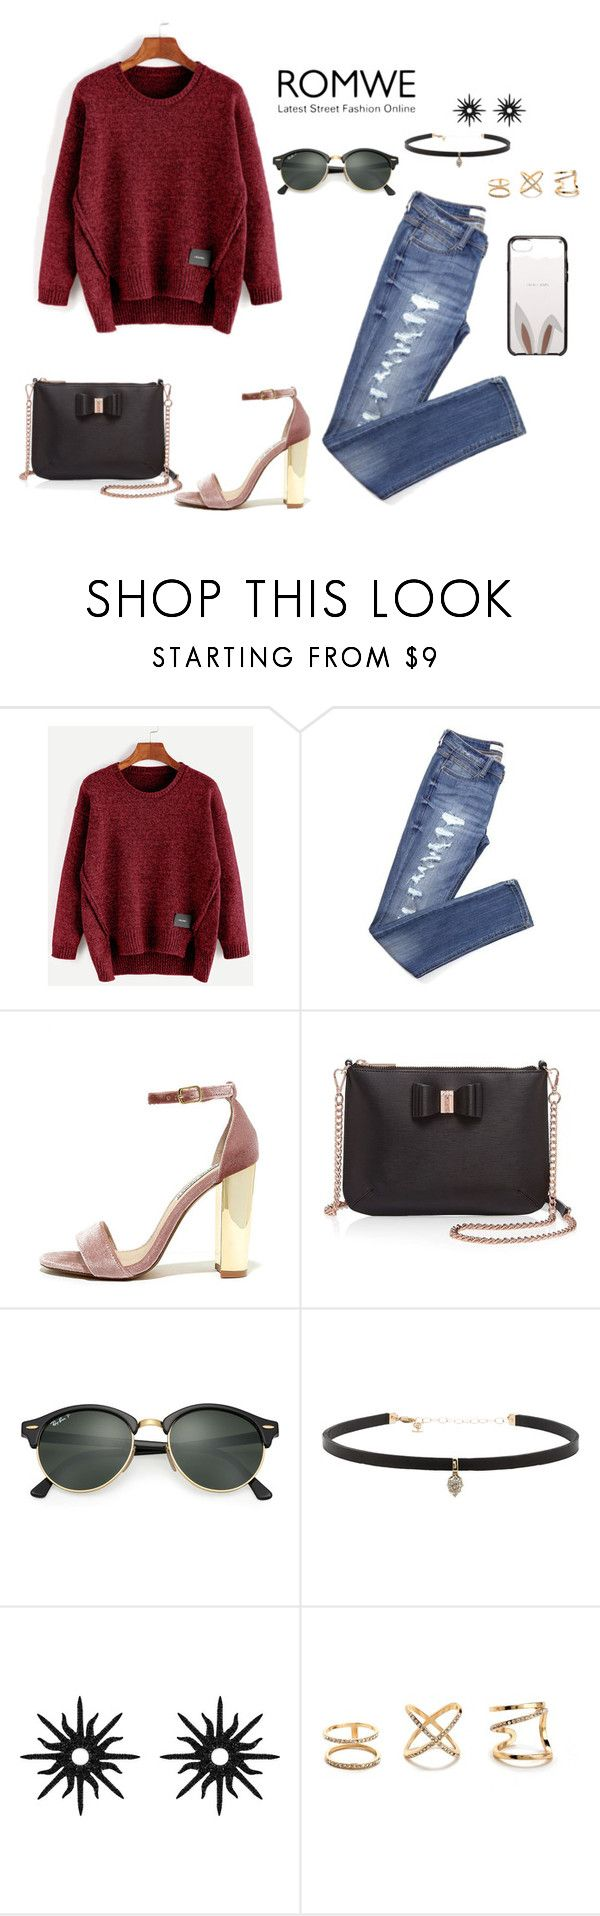 """""""Burgundy"""" by liily-95 on Polyvore featuring moda, Steve Madden, Ted Baker, Ray-Ban, Carbon & Hyde, Christina Debs y Kate Spade"""